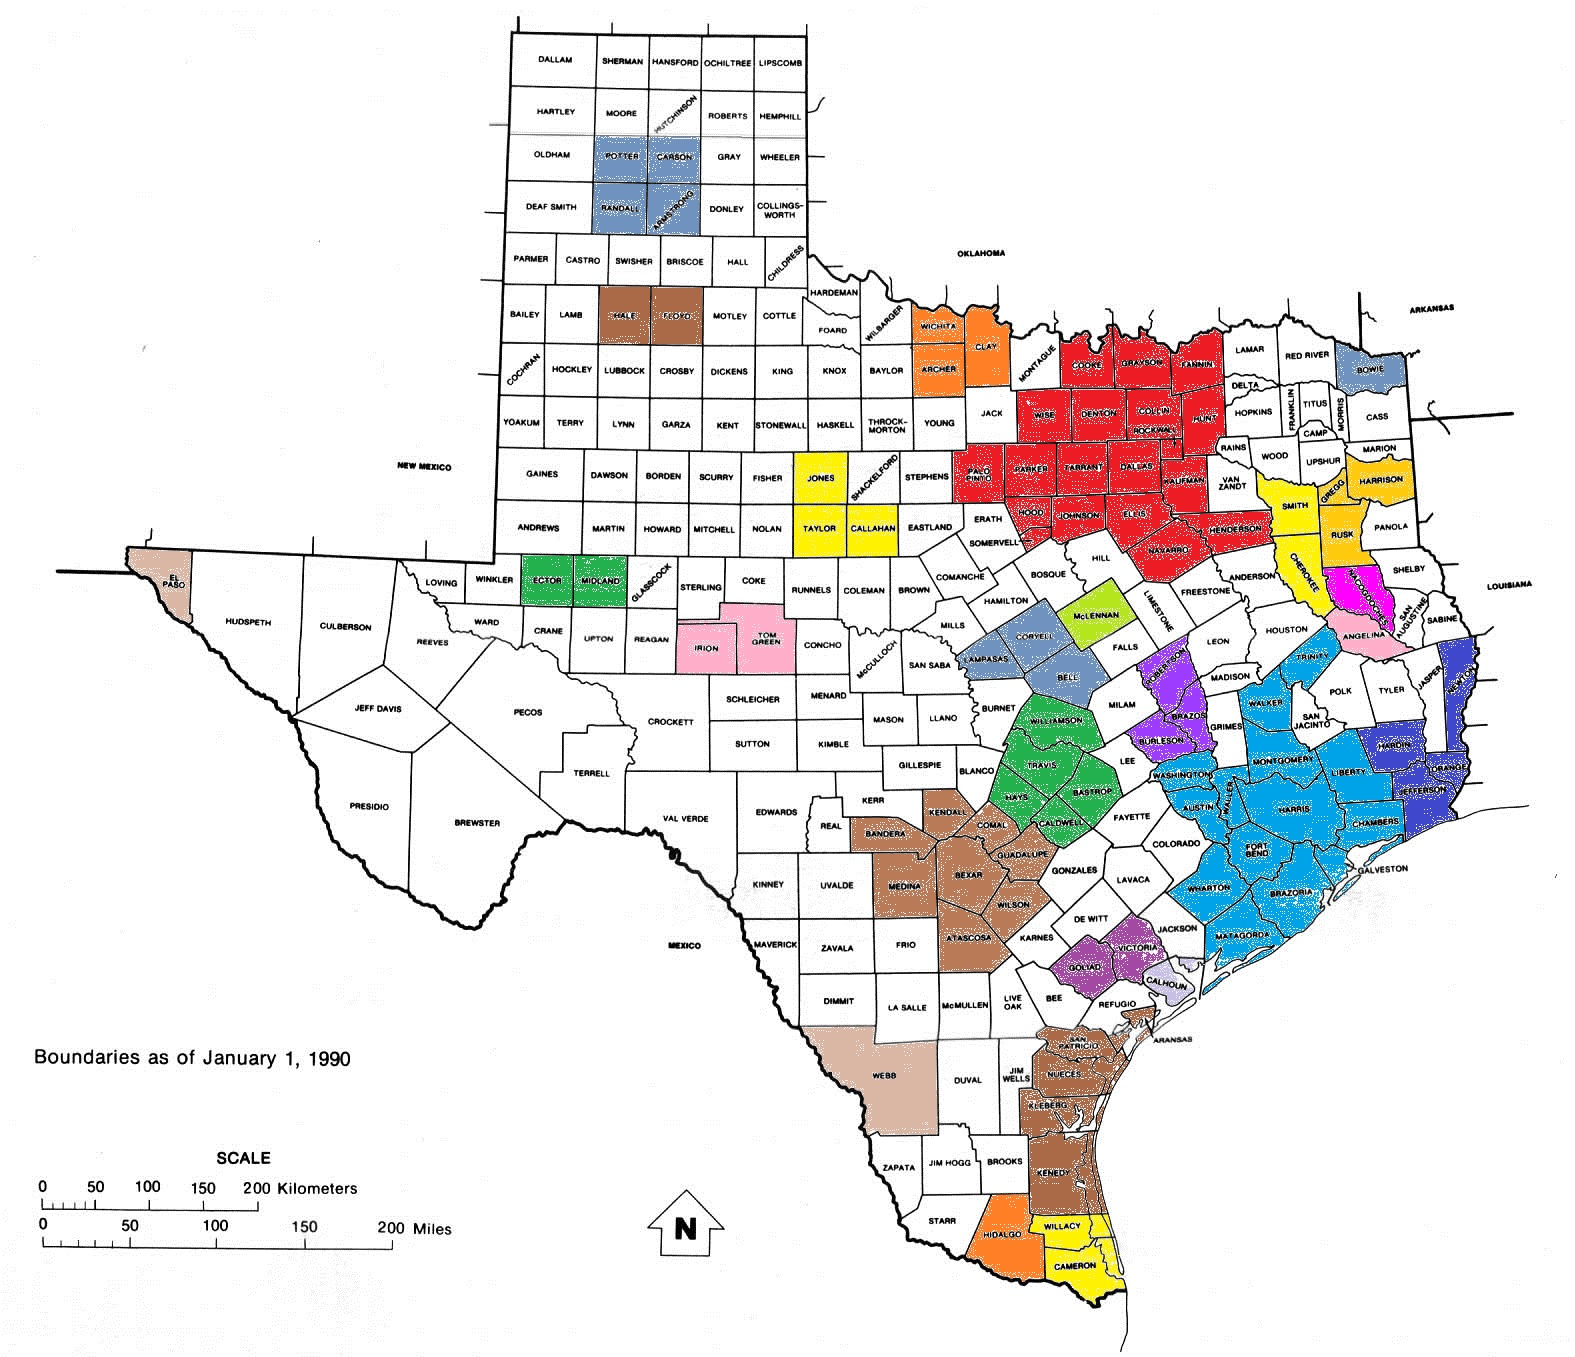 Texas Msa Map My Blog - Austin metro area map